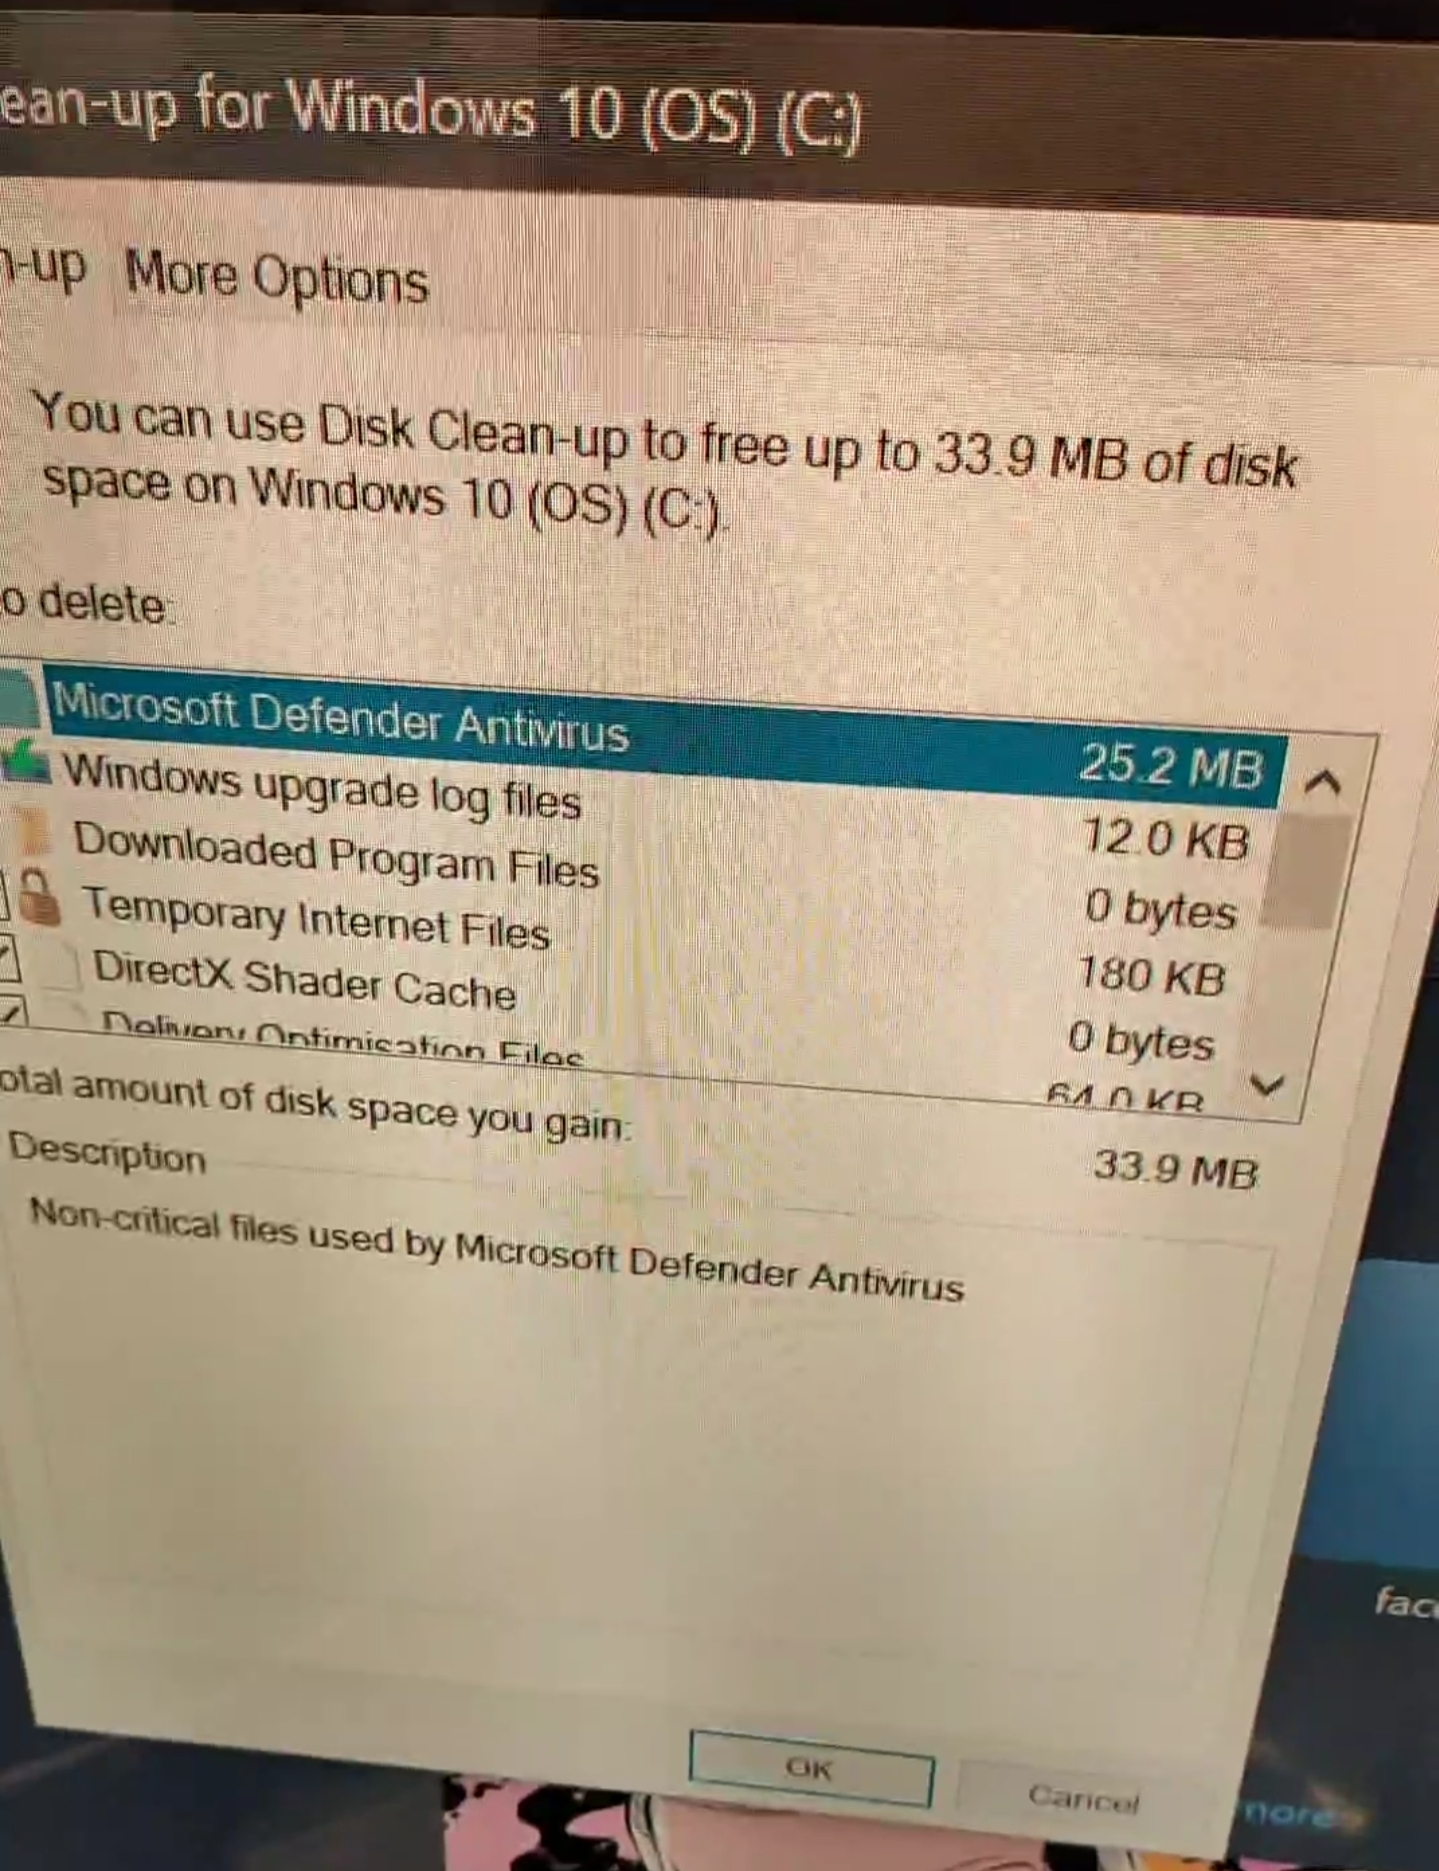 Disk cleanup is not cleaning Windows defender none critical files 791bd420-3fc8-4209-94c5-d74a53a5ffe1?upload=true.jpg